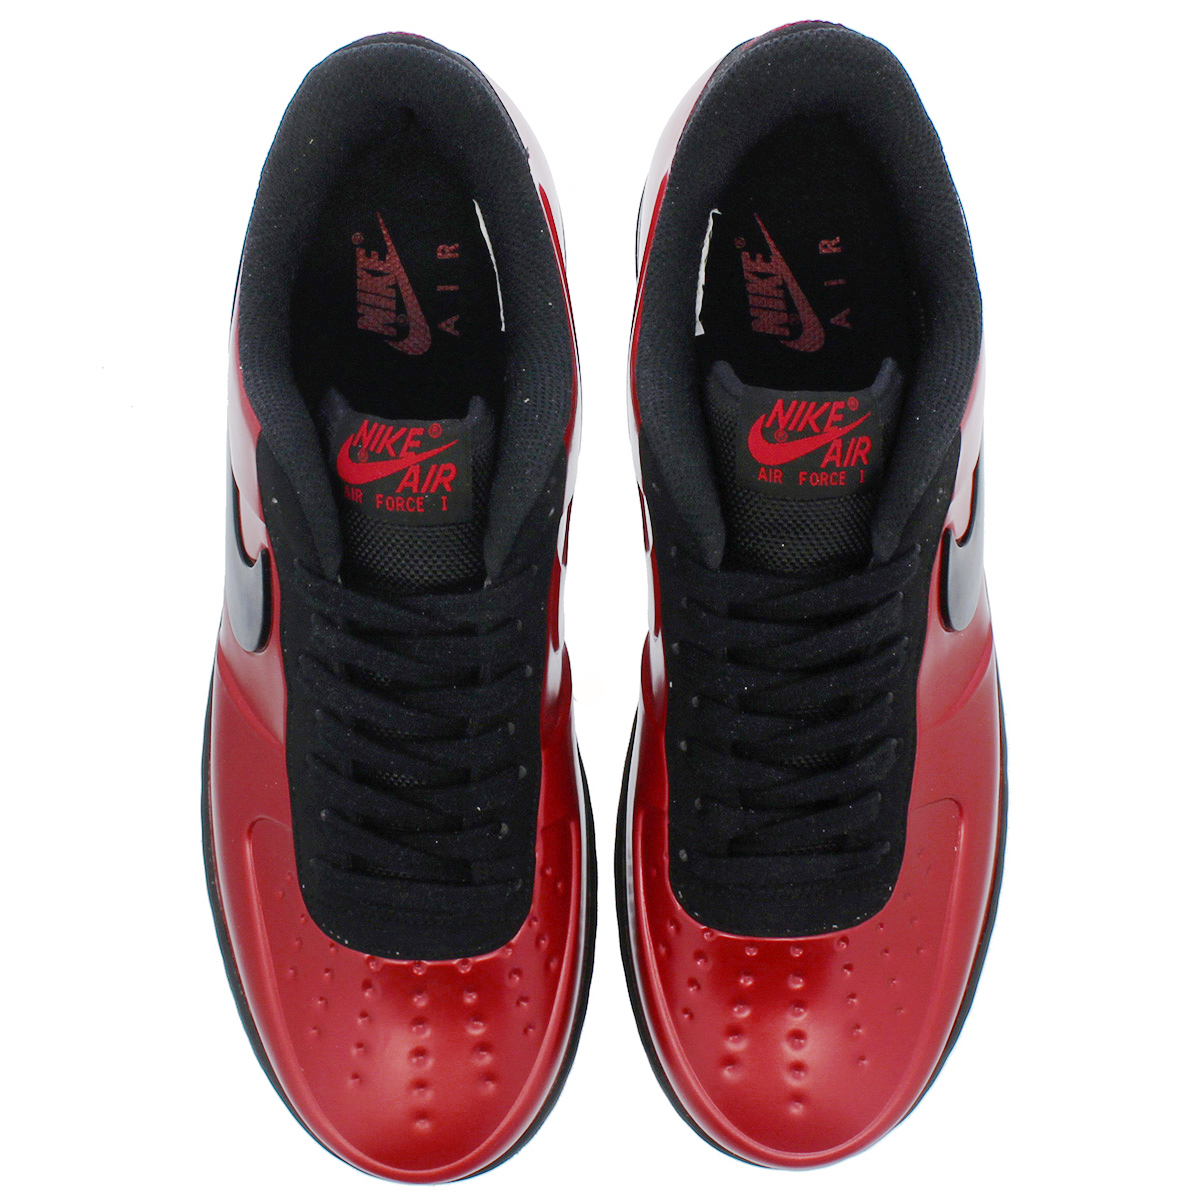 3f085e6dec2 NIKE AIR FORCE 1 FOAMPOSITE PRO CUP Nike air force 1 フォームポジットプロカップ GYM RED BLACK  aj3664-601